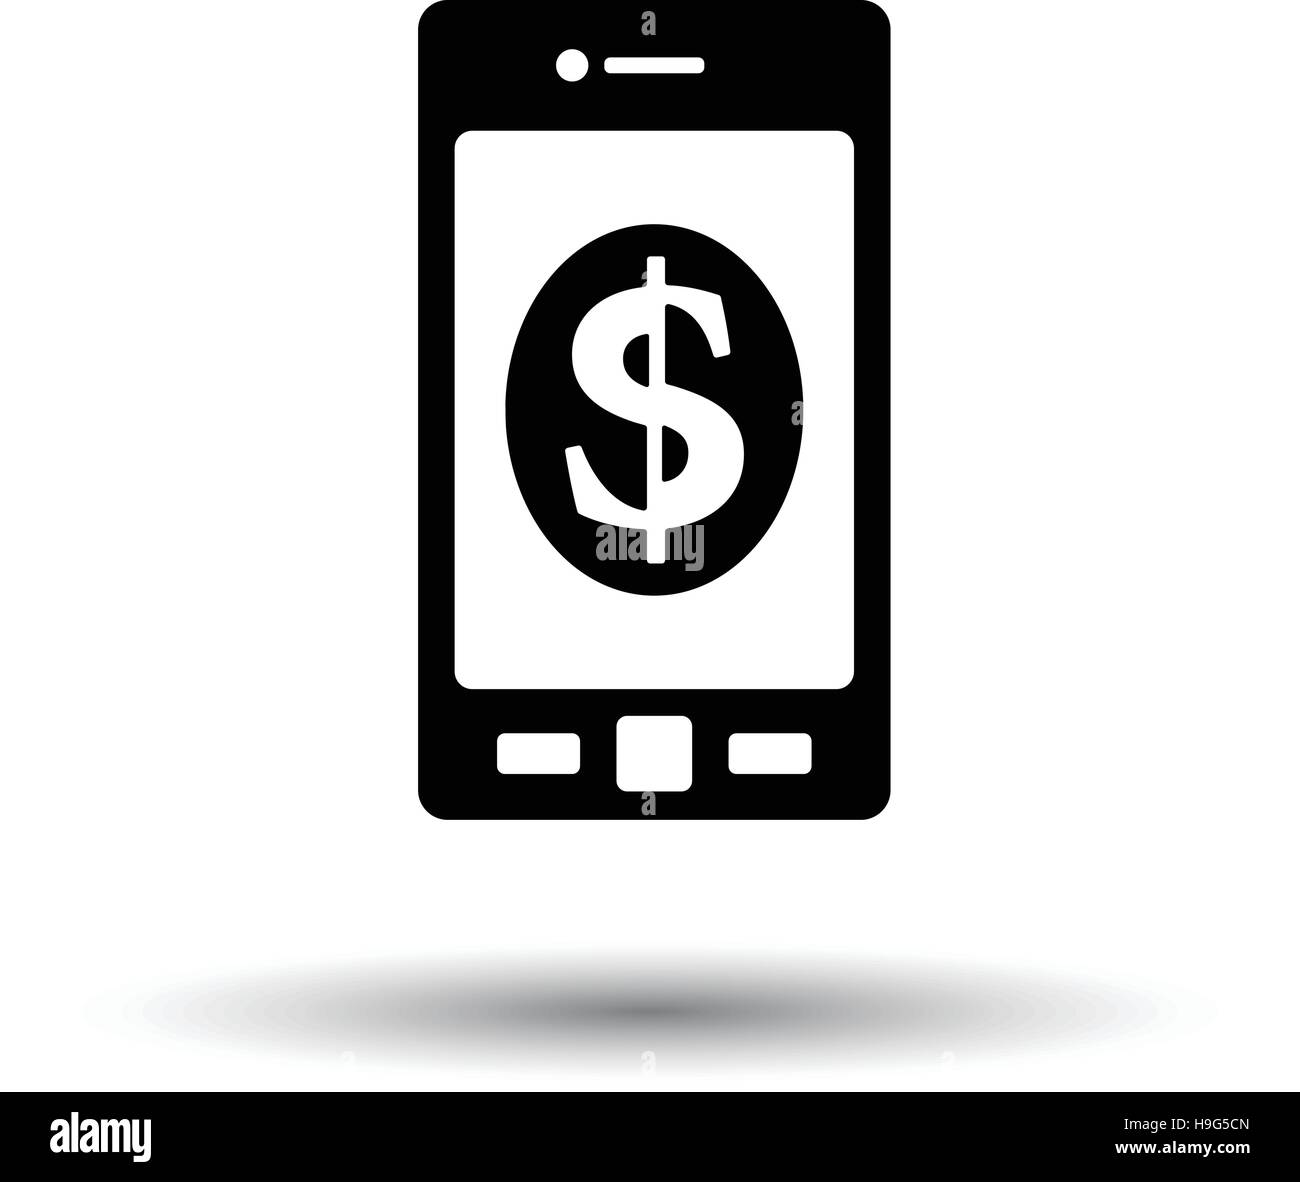 Smartphone with dollar sign icon. White background with shadow design. Vector illustration. - Stock Vector